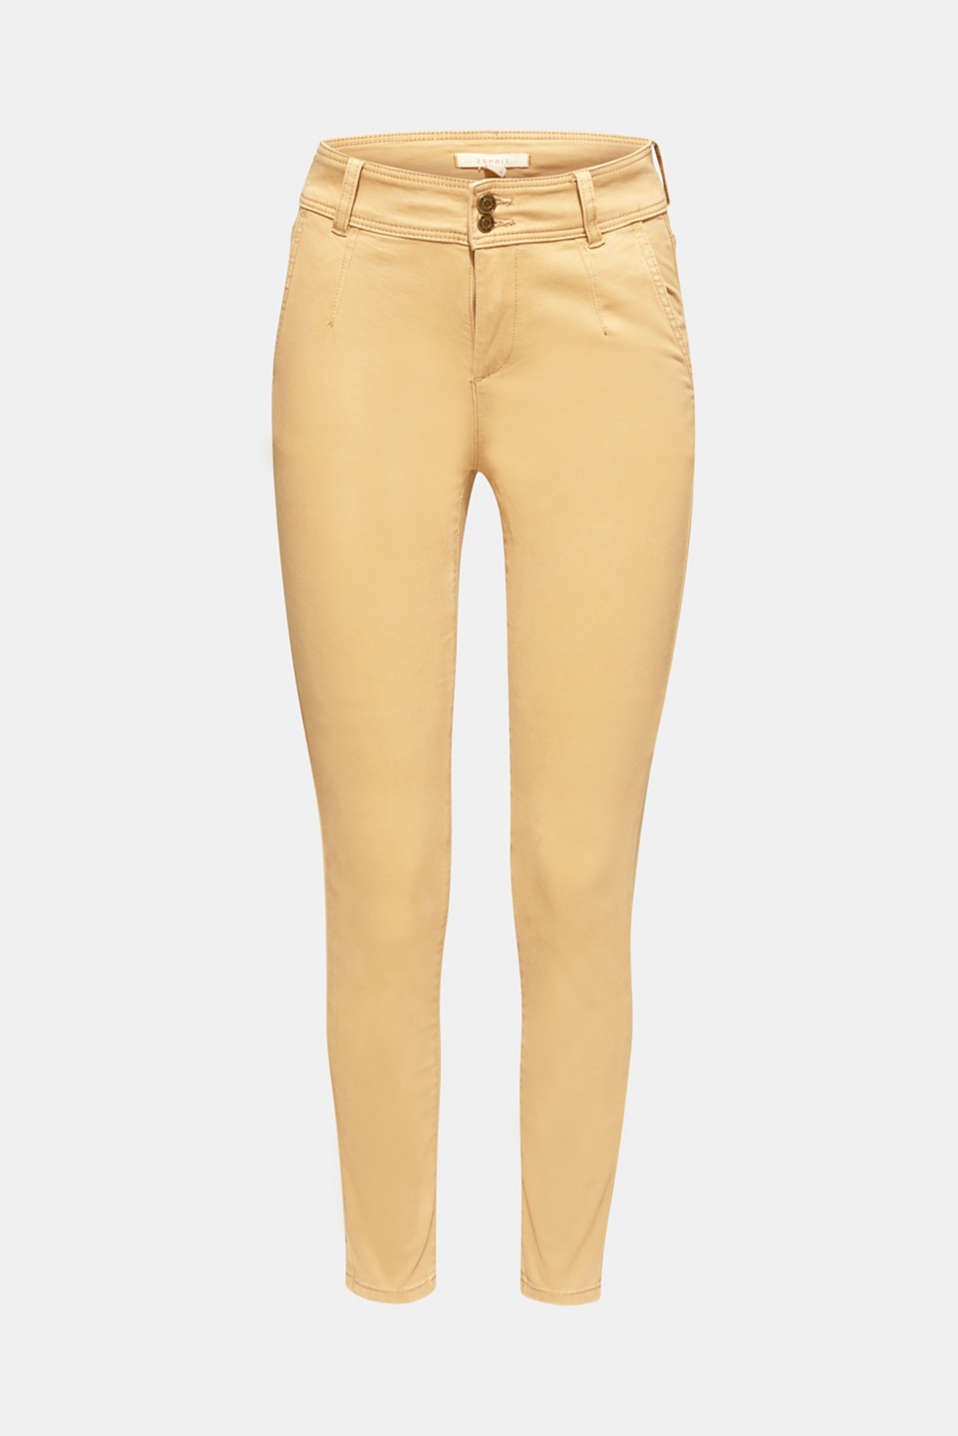 Esprit - Doux pantalon stretch à double bouton